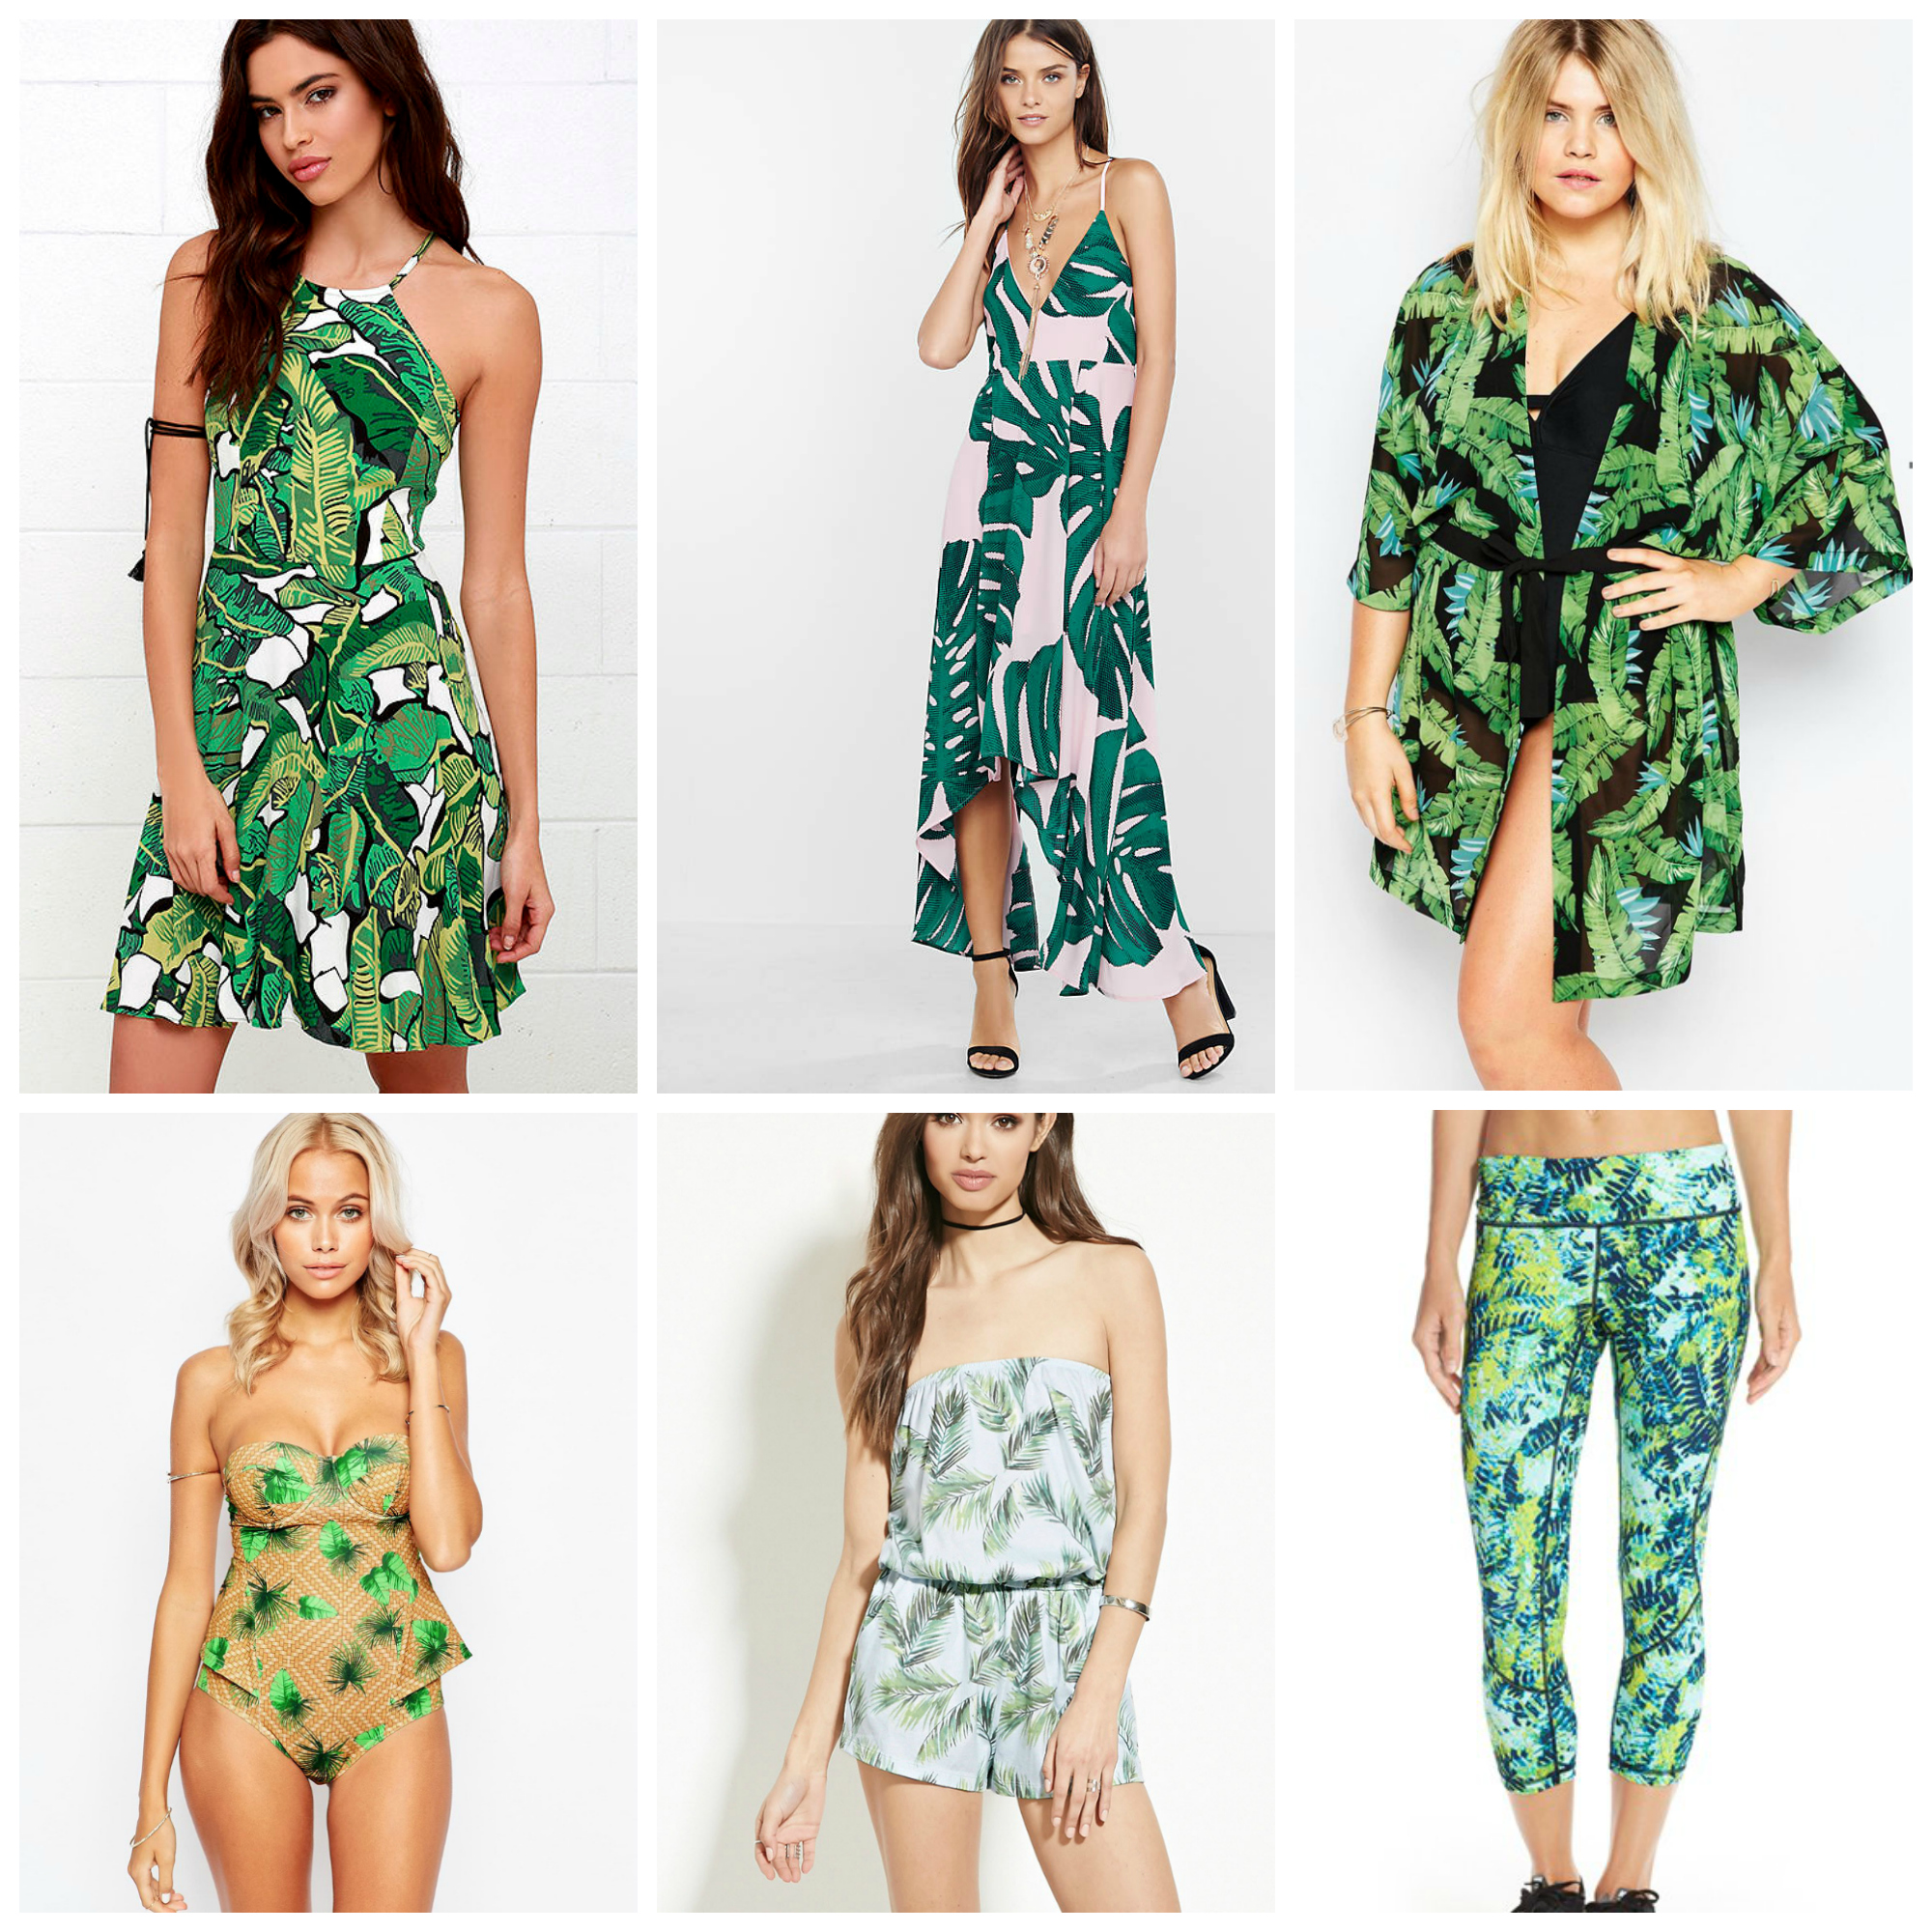 Palm Leaf Print Outfit Ideas